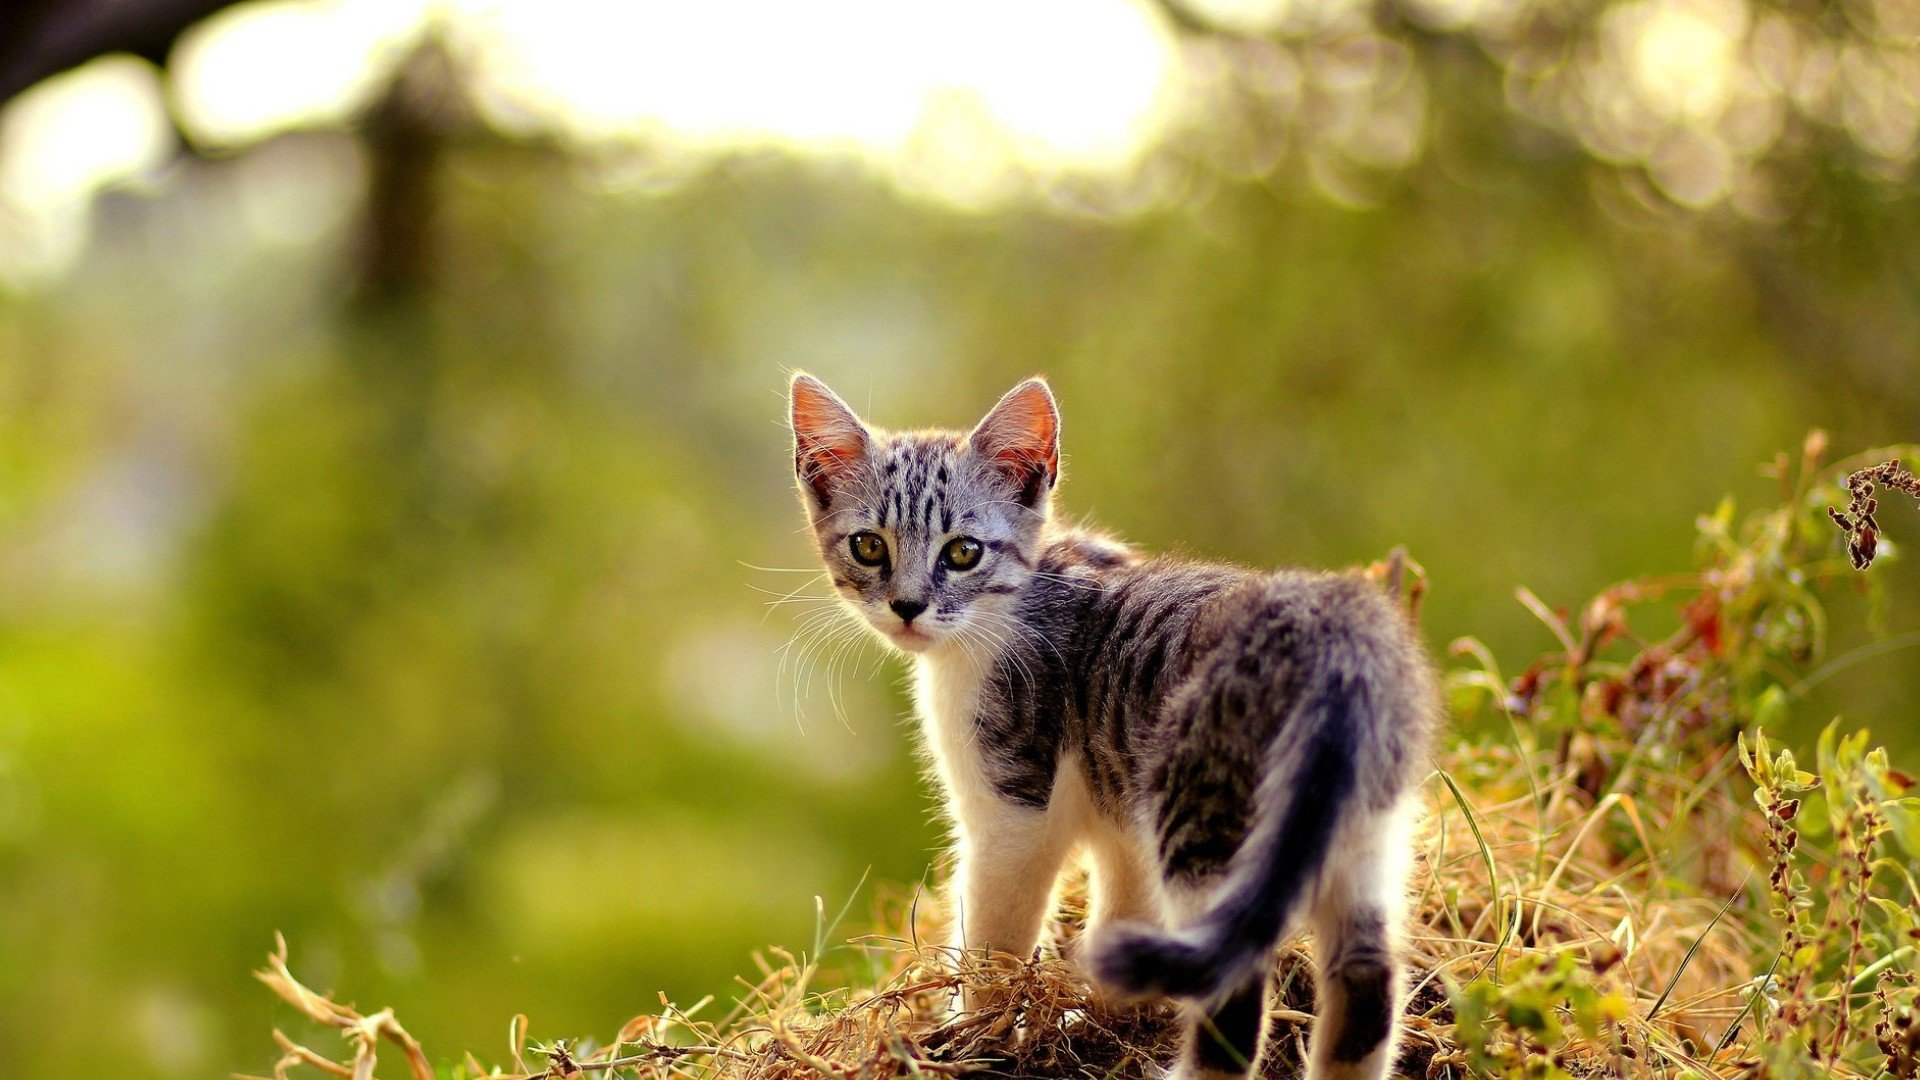 Download full hd Kitten PC background ID:426385 for free